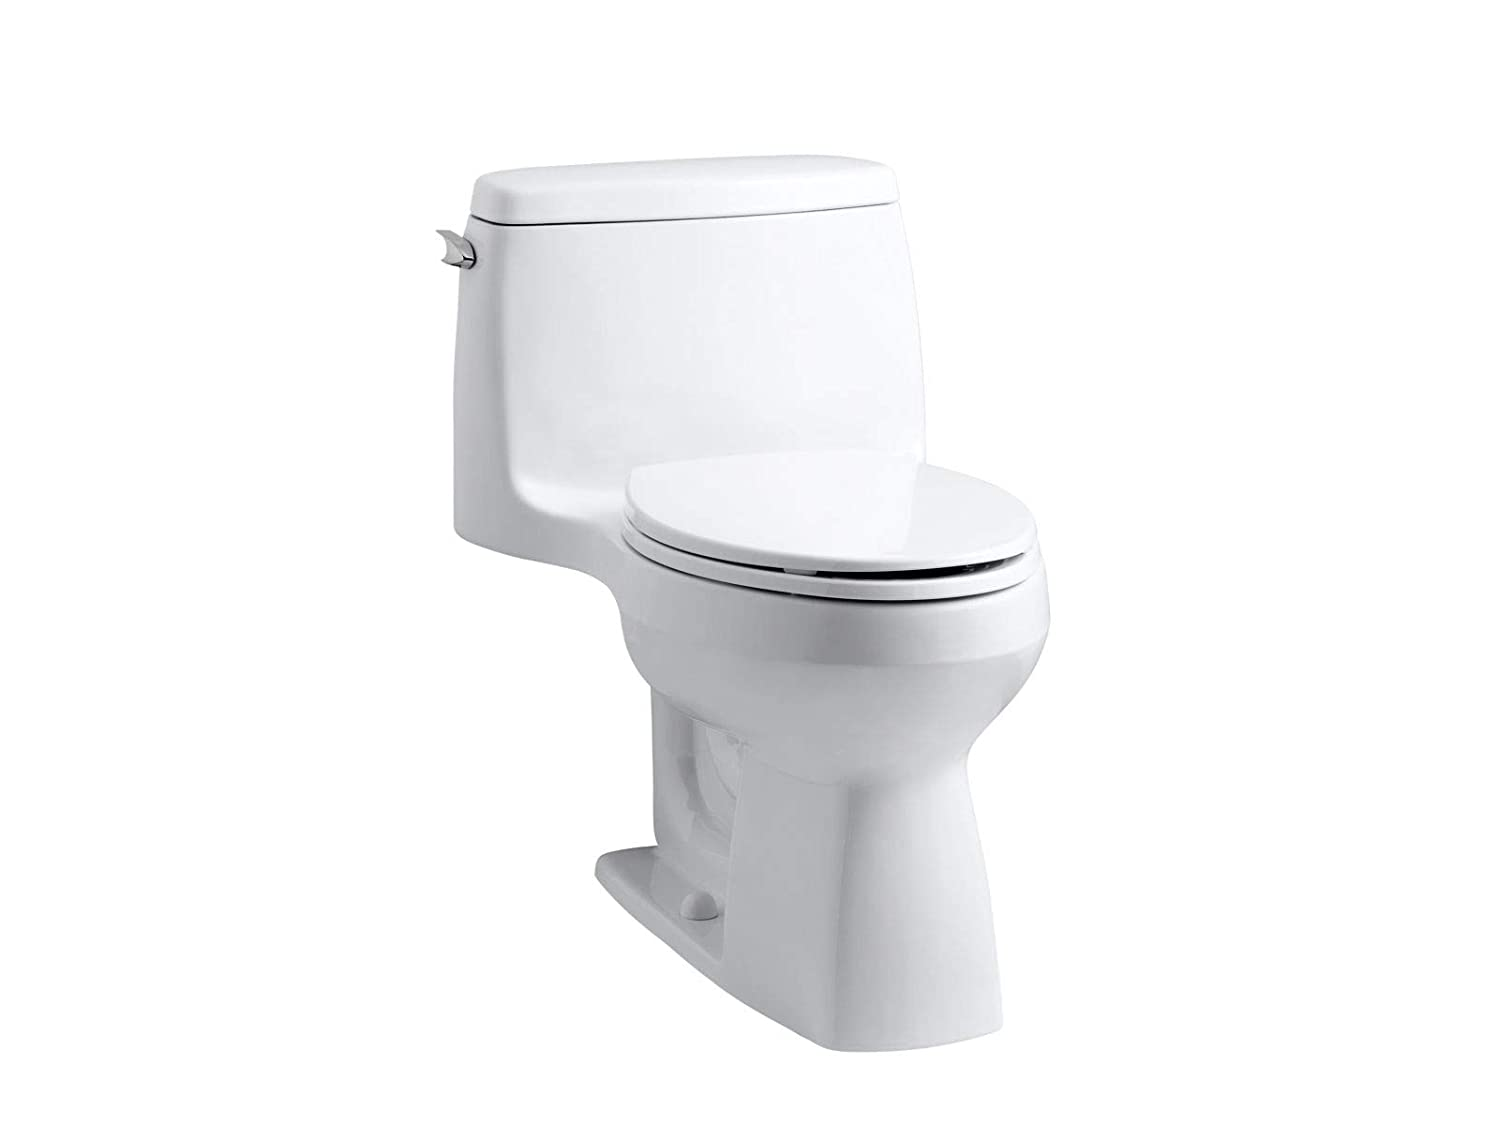 Top 5 Best One Piece Toilets Reviews in 2020 3